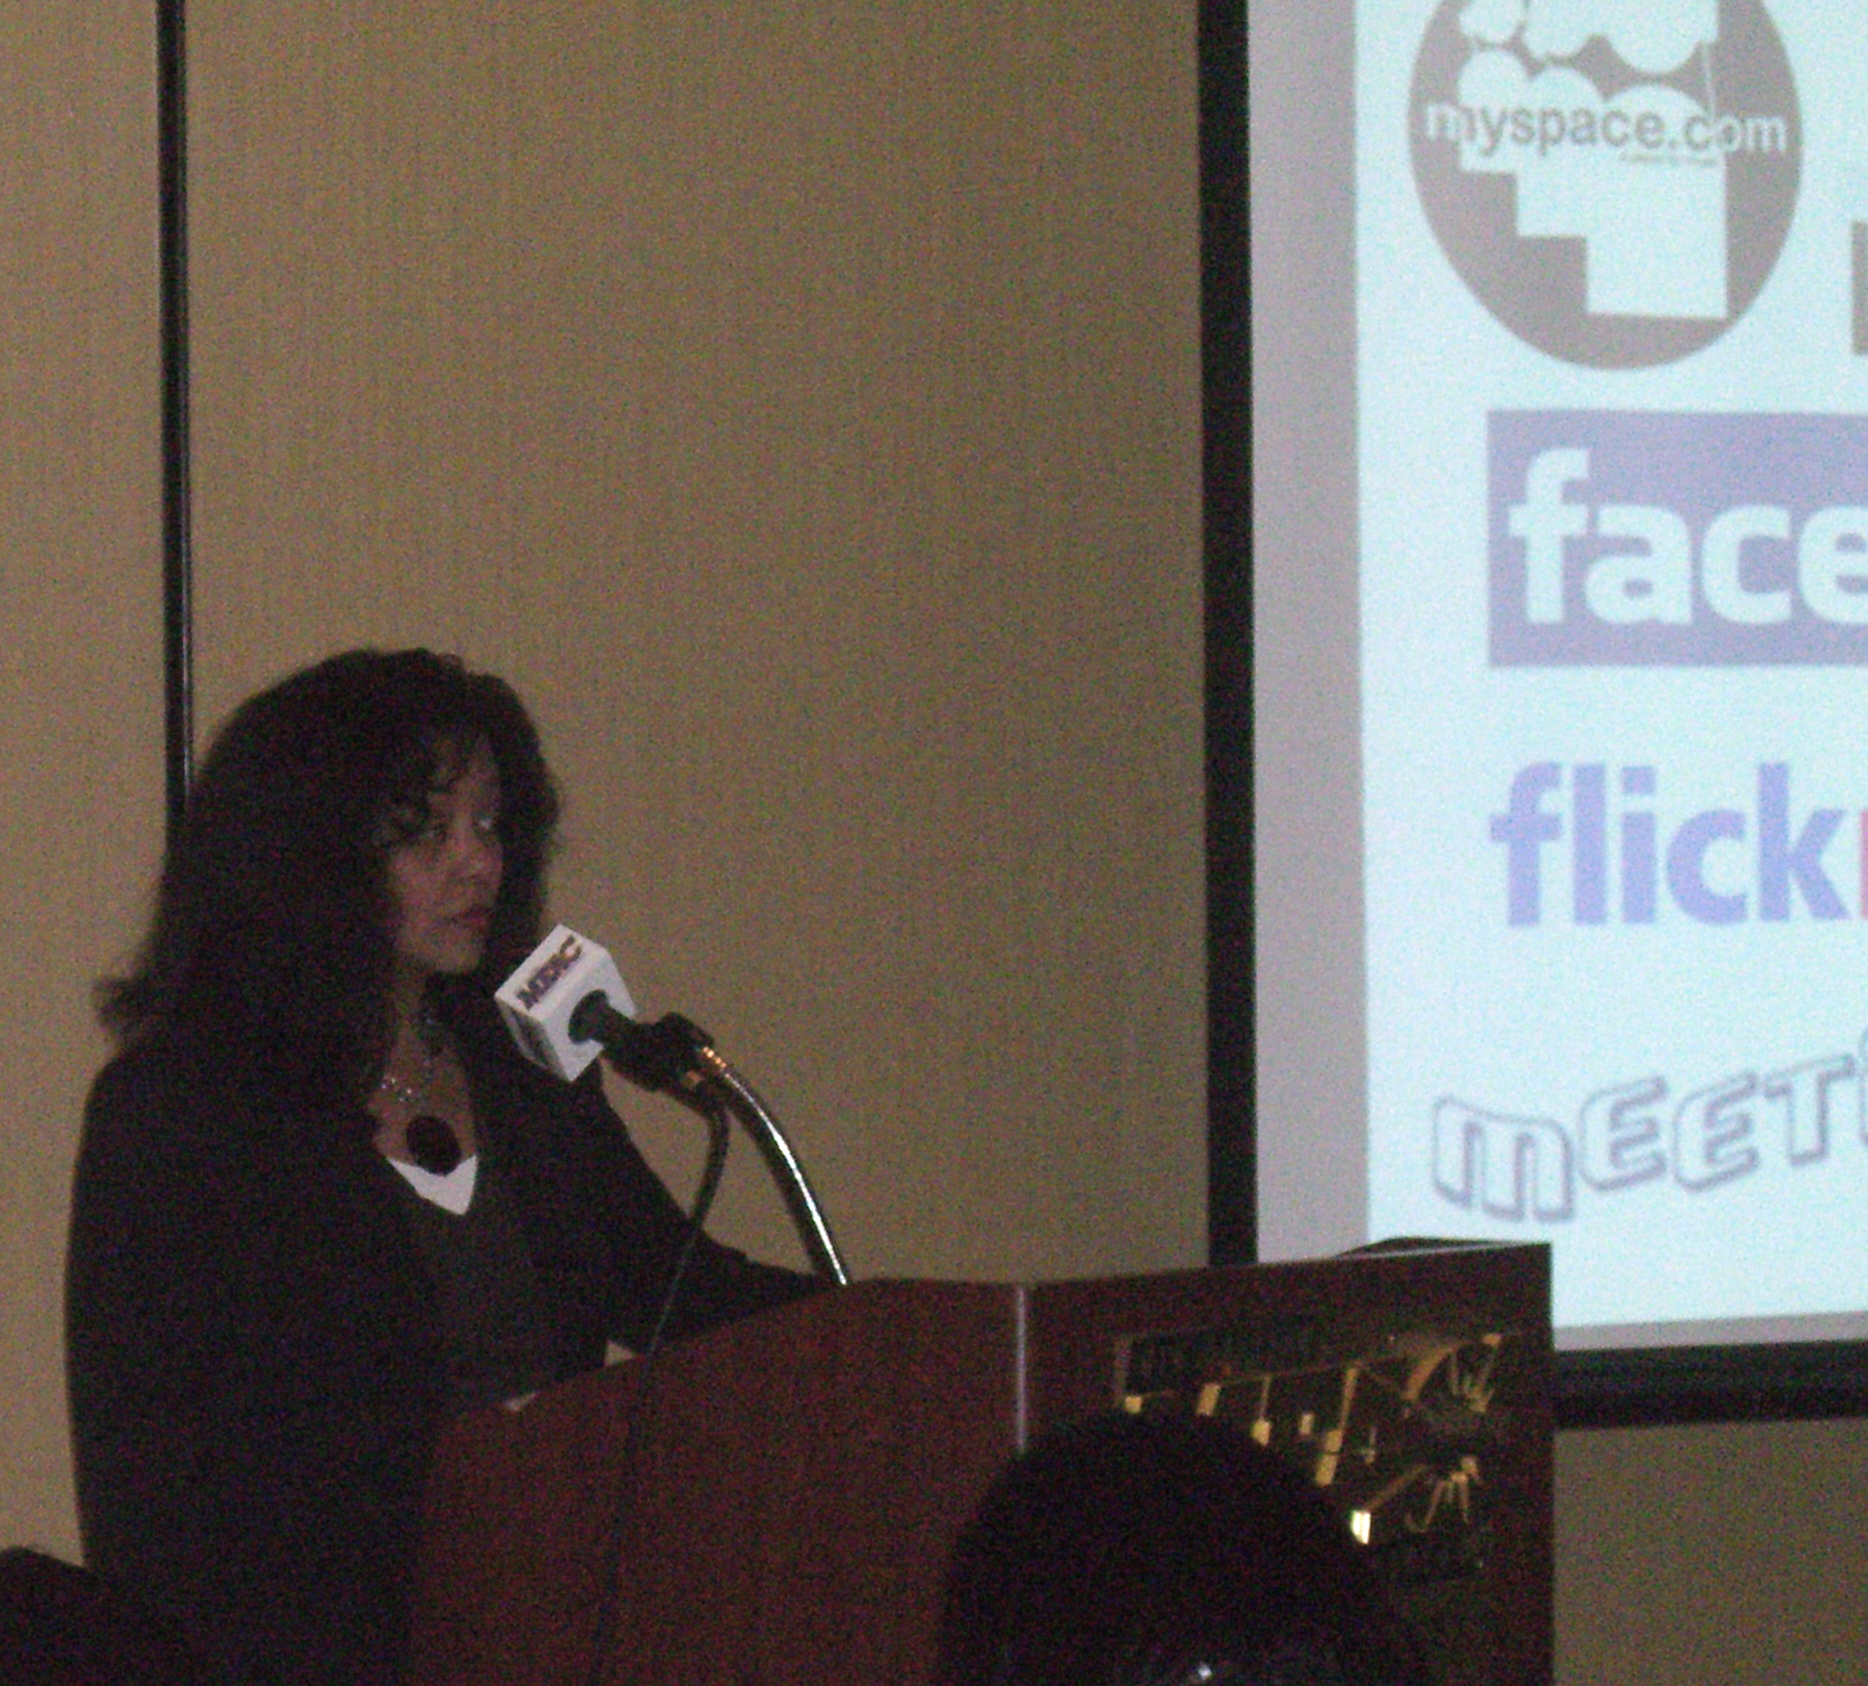 Speaking on Social Networking